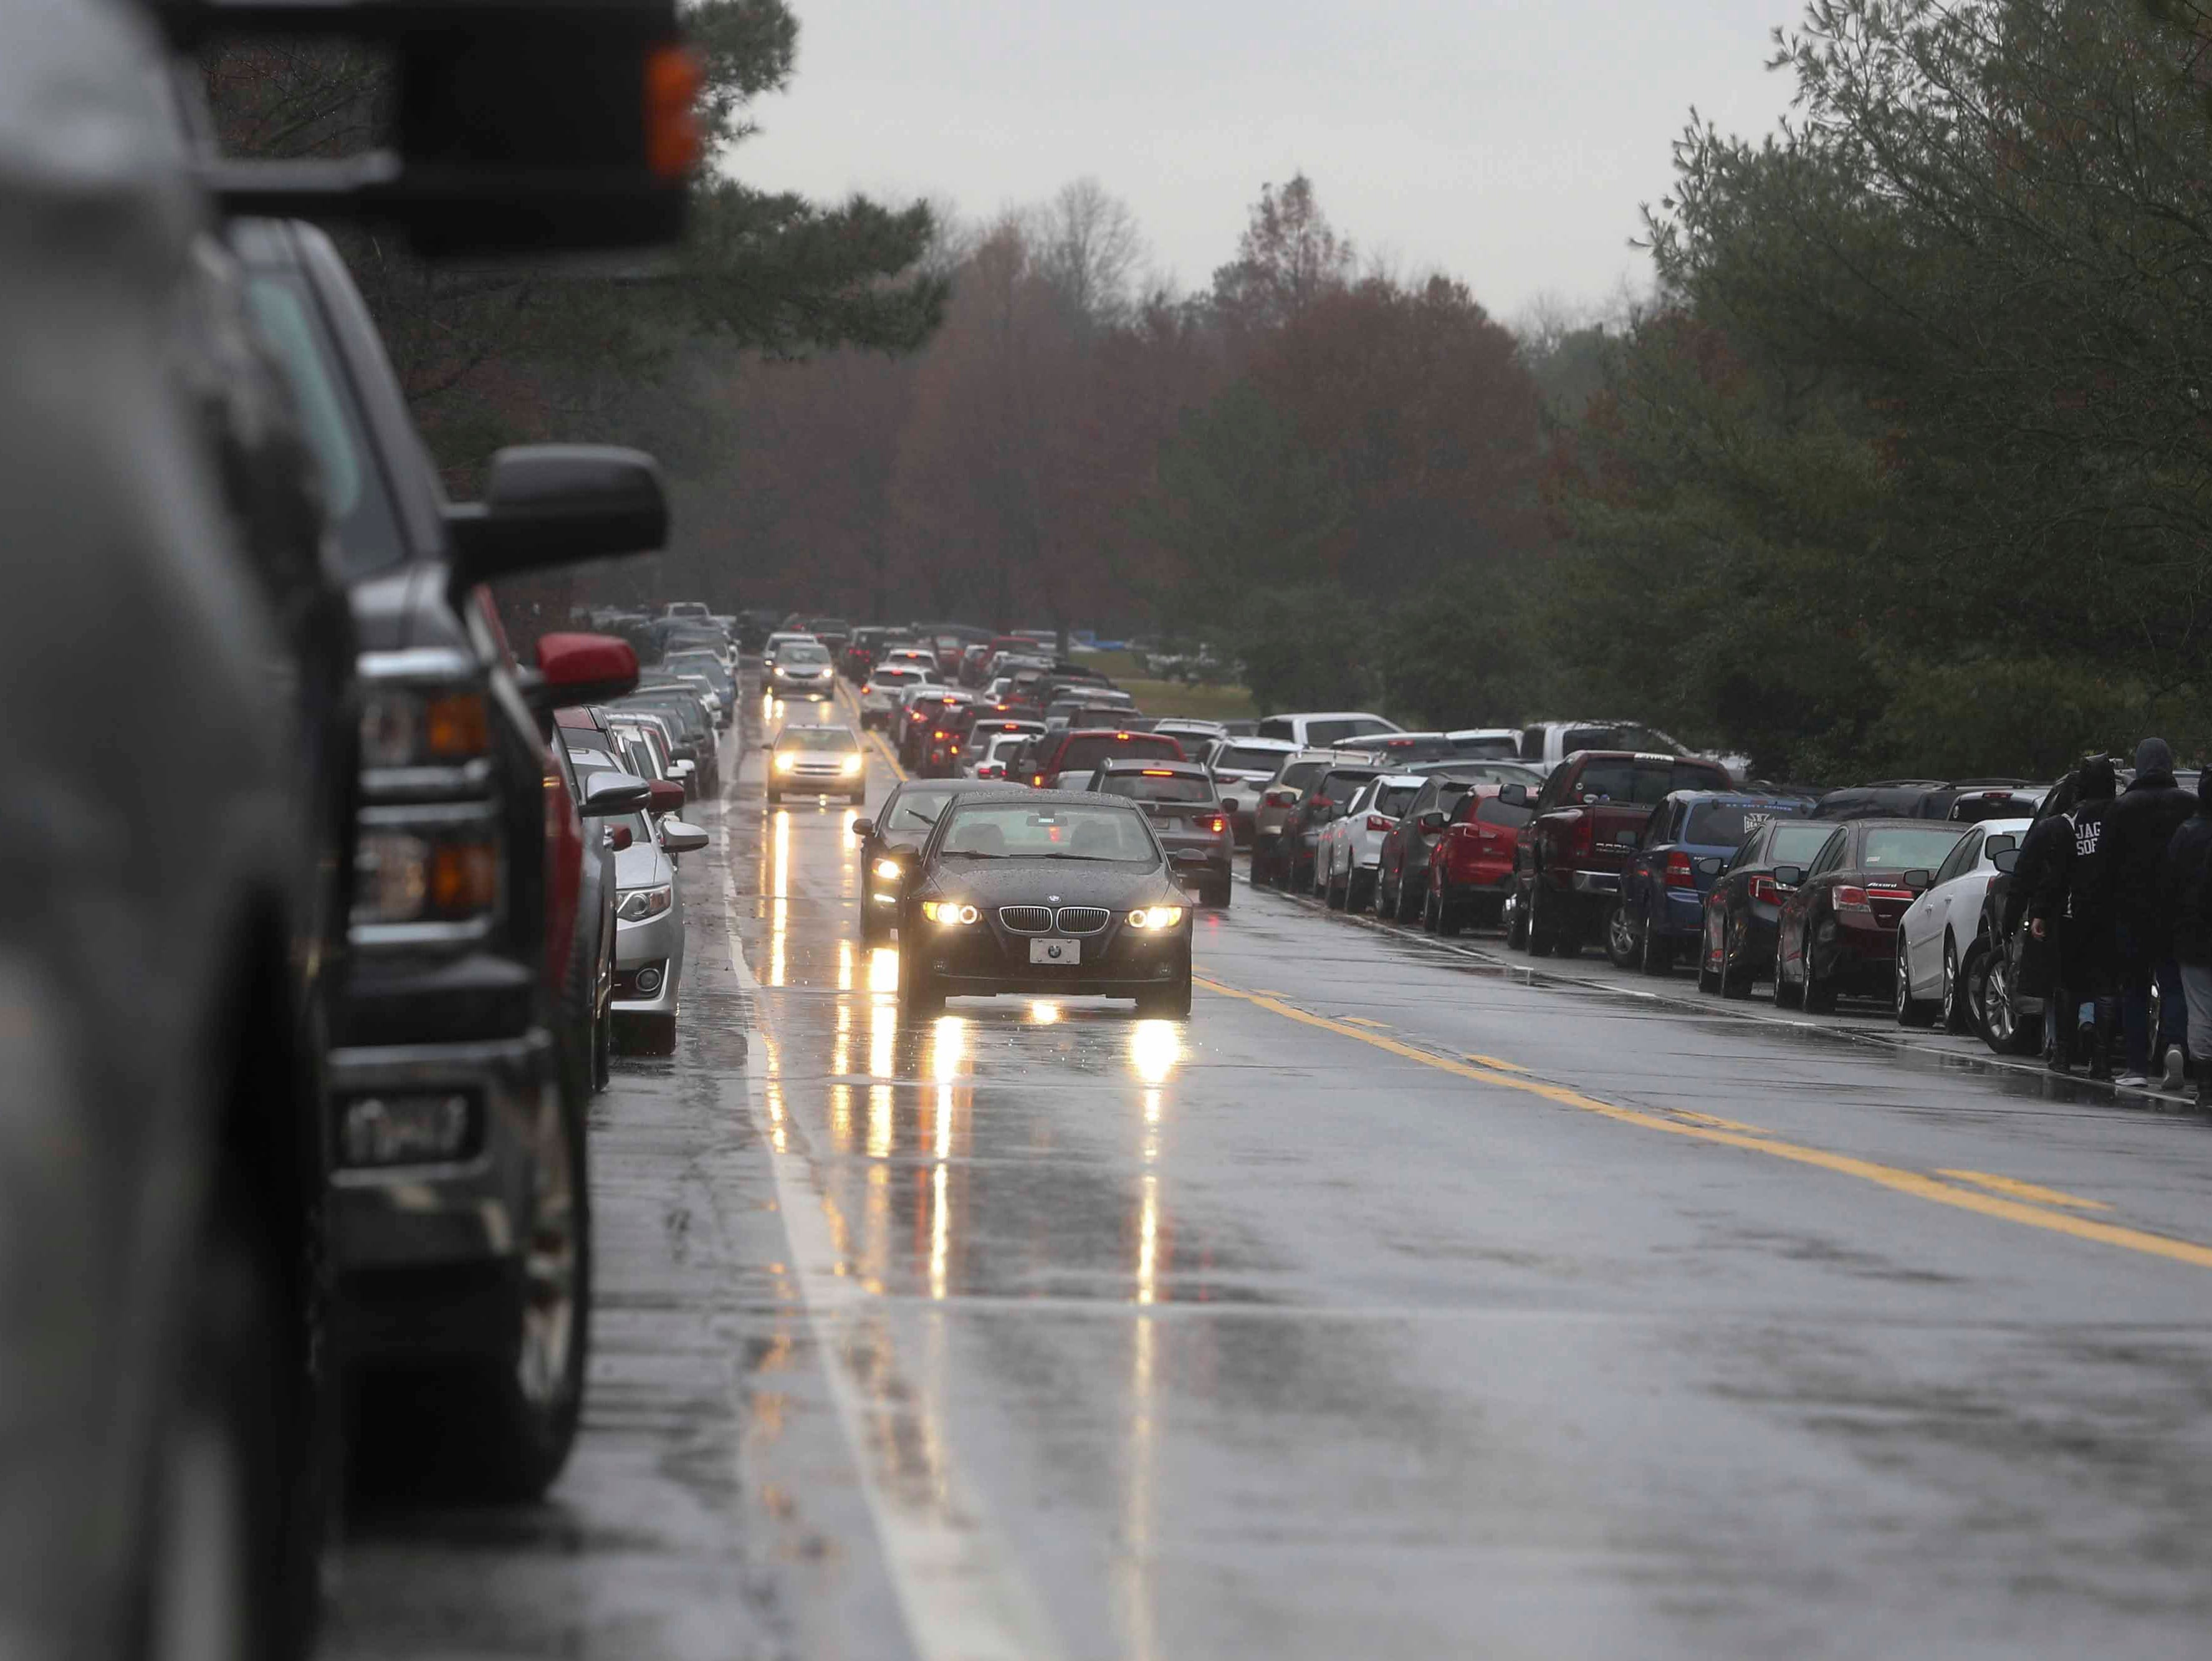 Cars line Chesapeake City Road as a couple thousand of volunteers flood the Delaware Veterans Memorial Cemetery in Bear to volunteer as part of Wreaths Across America Saturday. The grave-decorating effort was duplicated at the state veterans memorial cemetery in Millsboro and throughout the nation at more than 1400 locations Saturday.